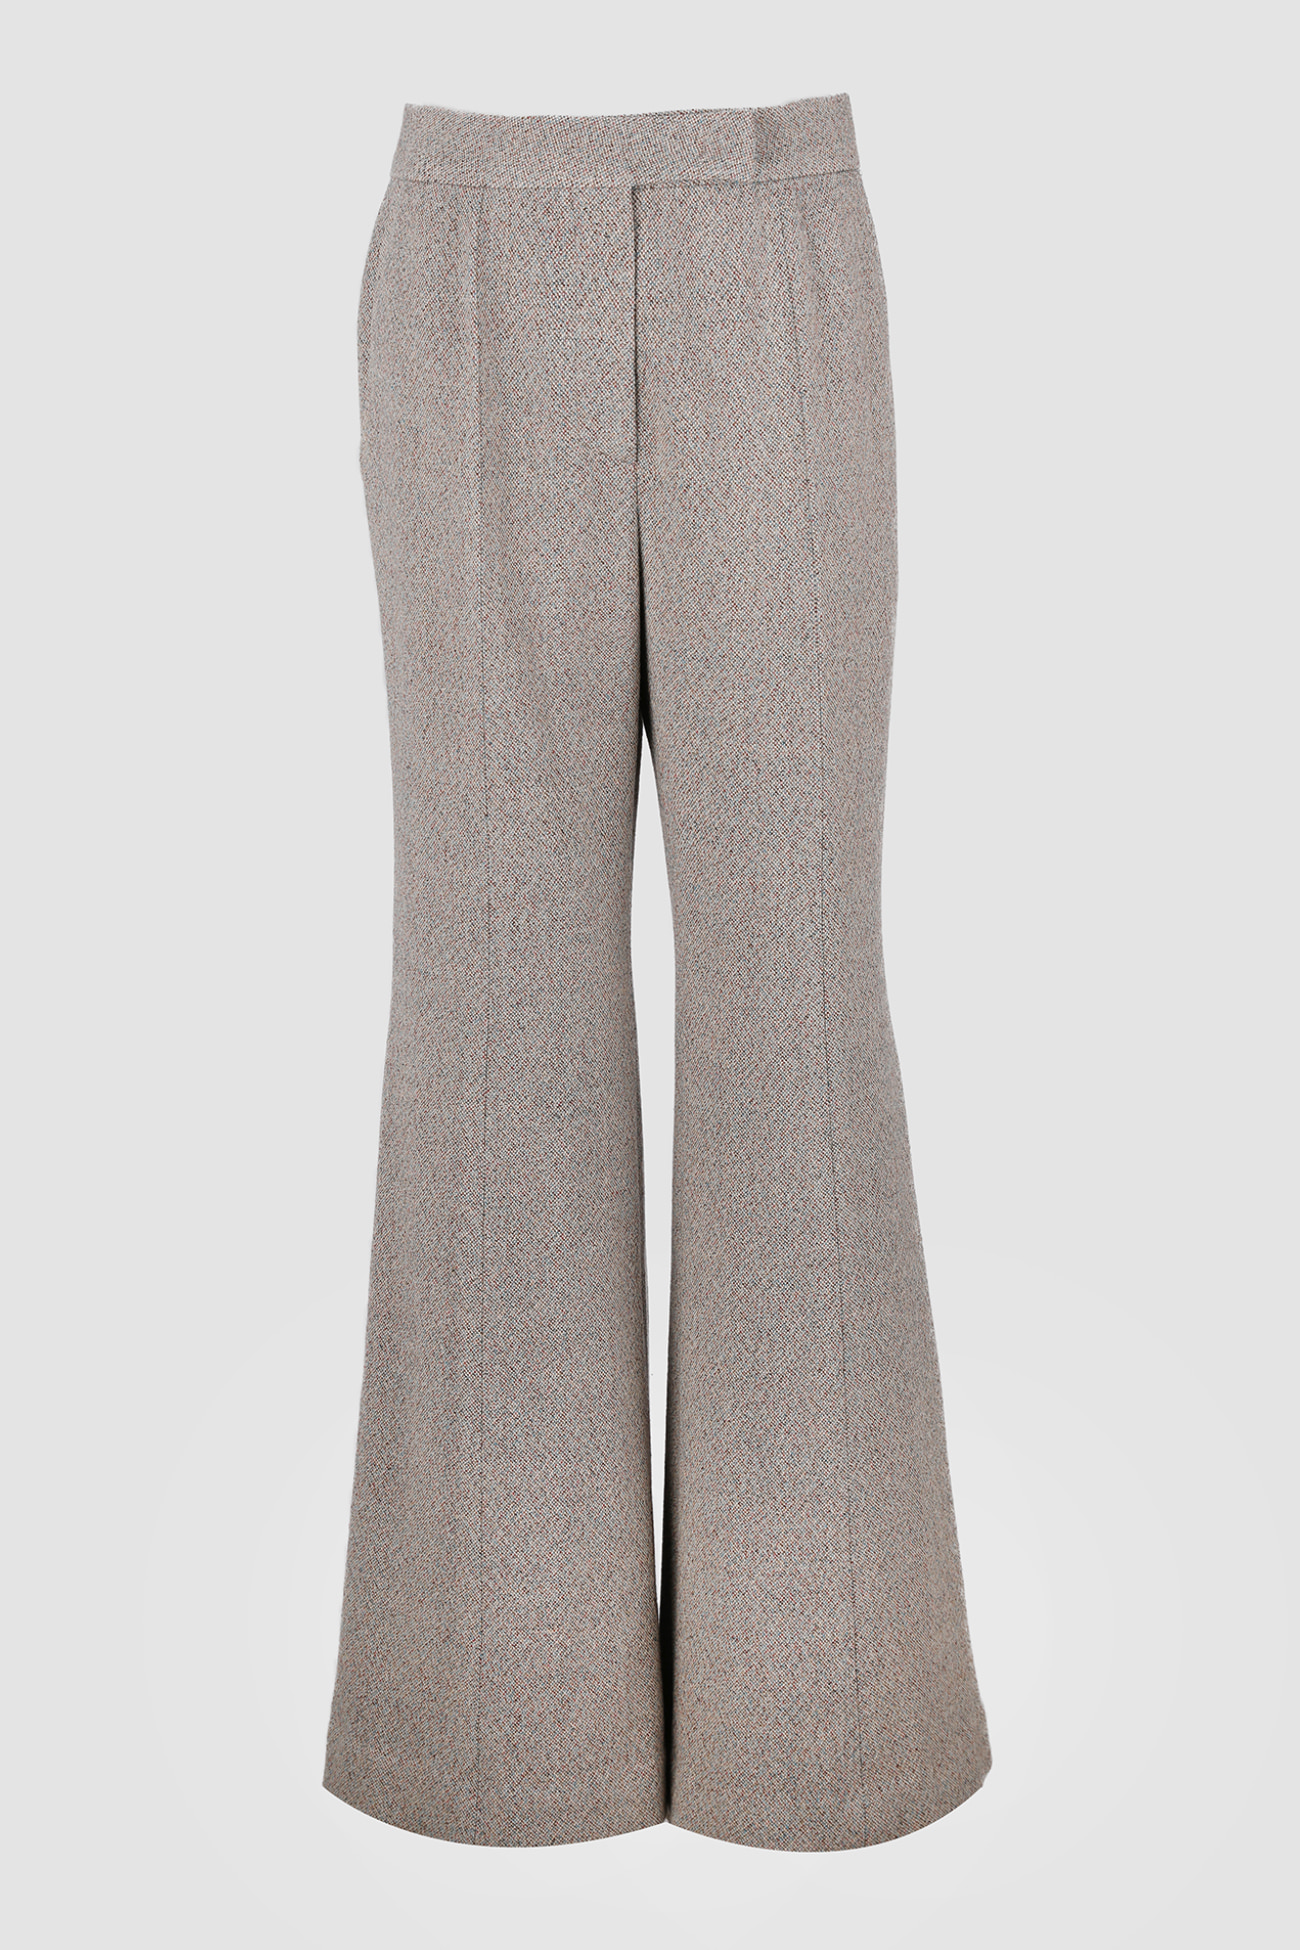 HIGH QUALITY LINE - Leda flared italy wool Trousers (TWEED)